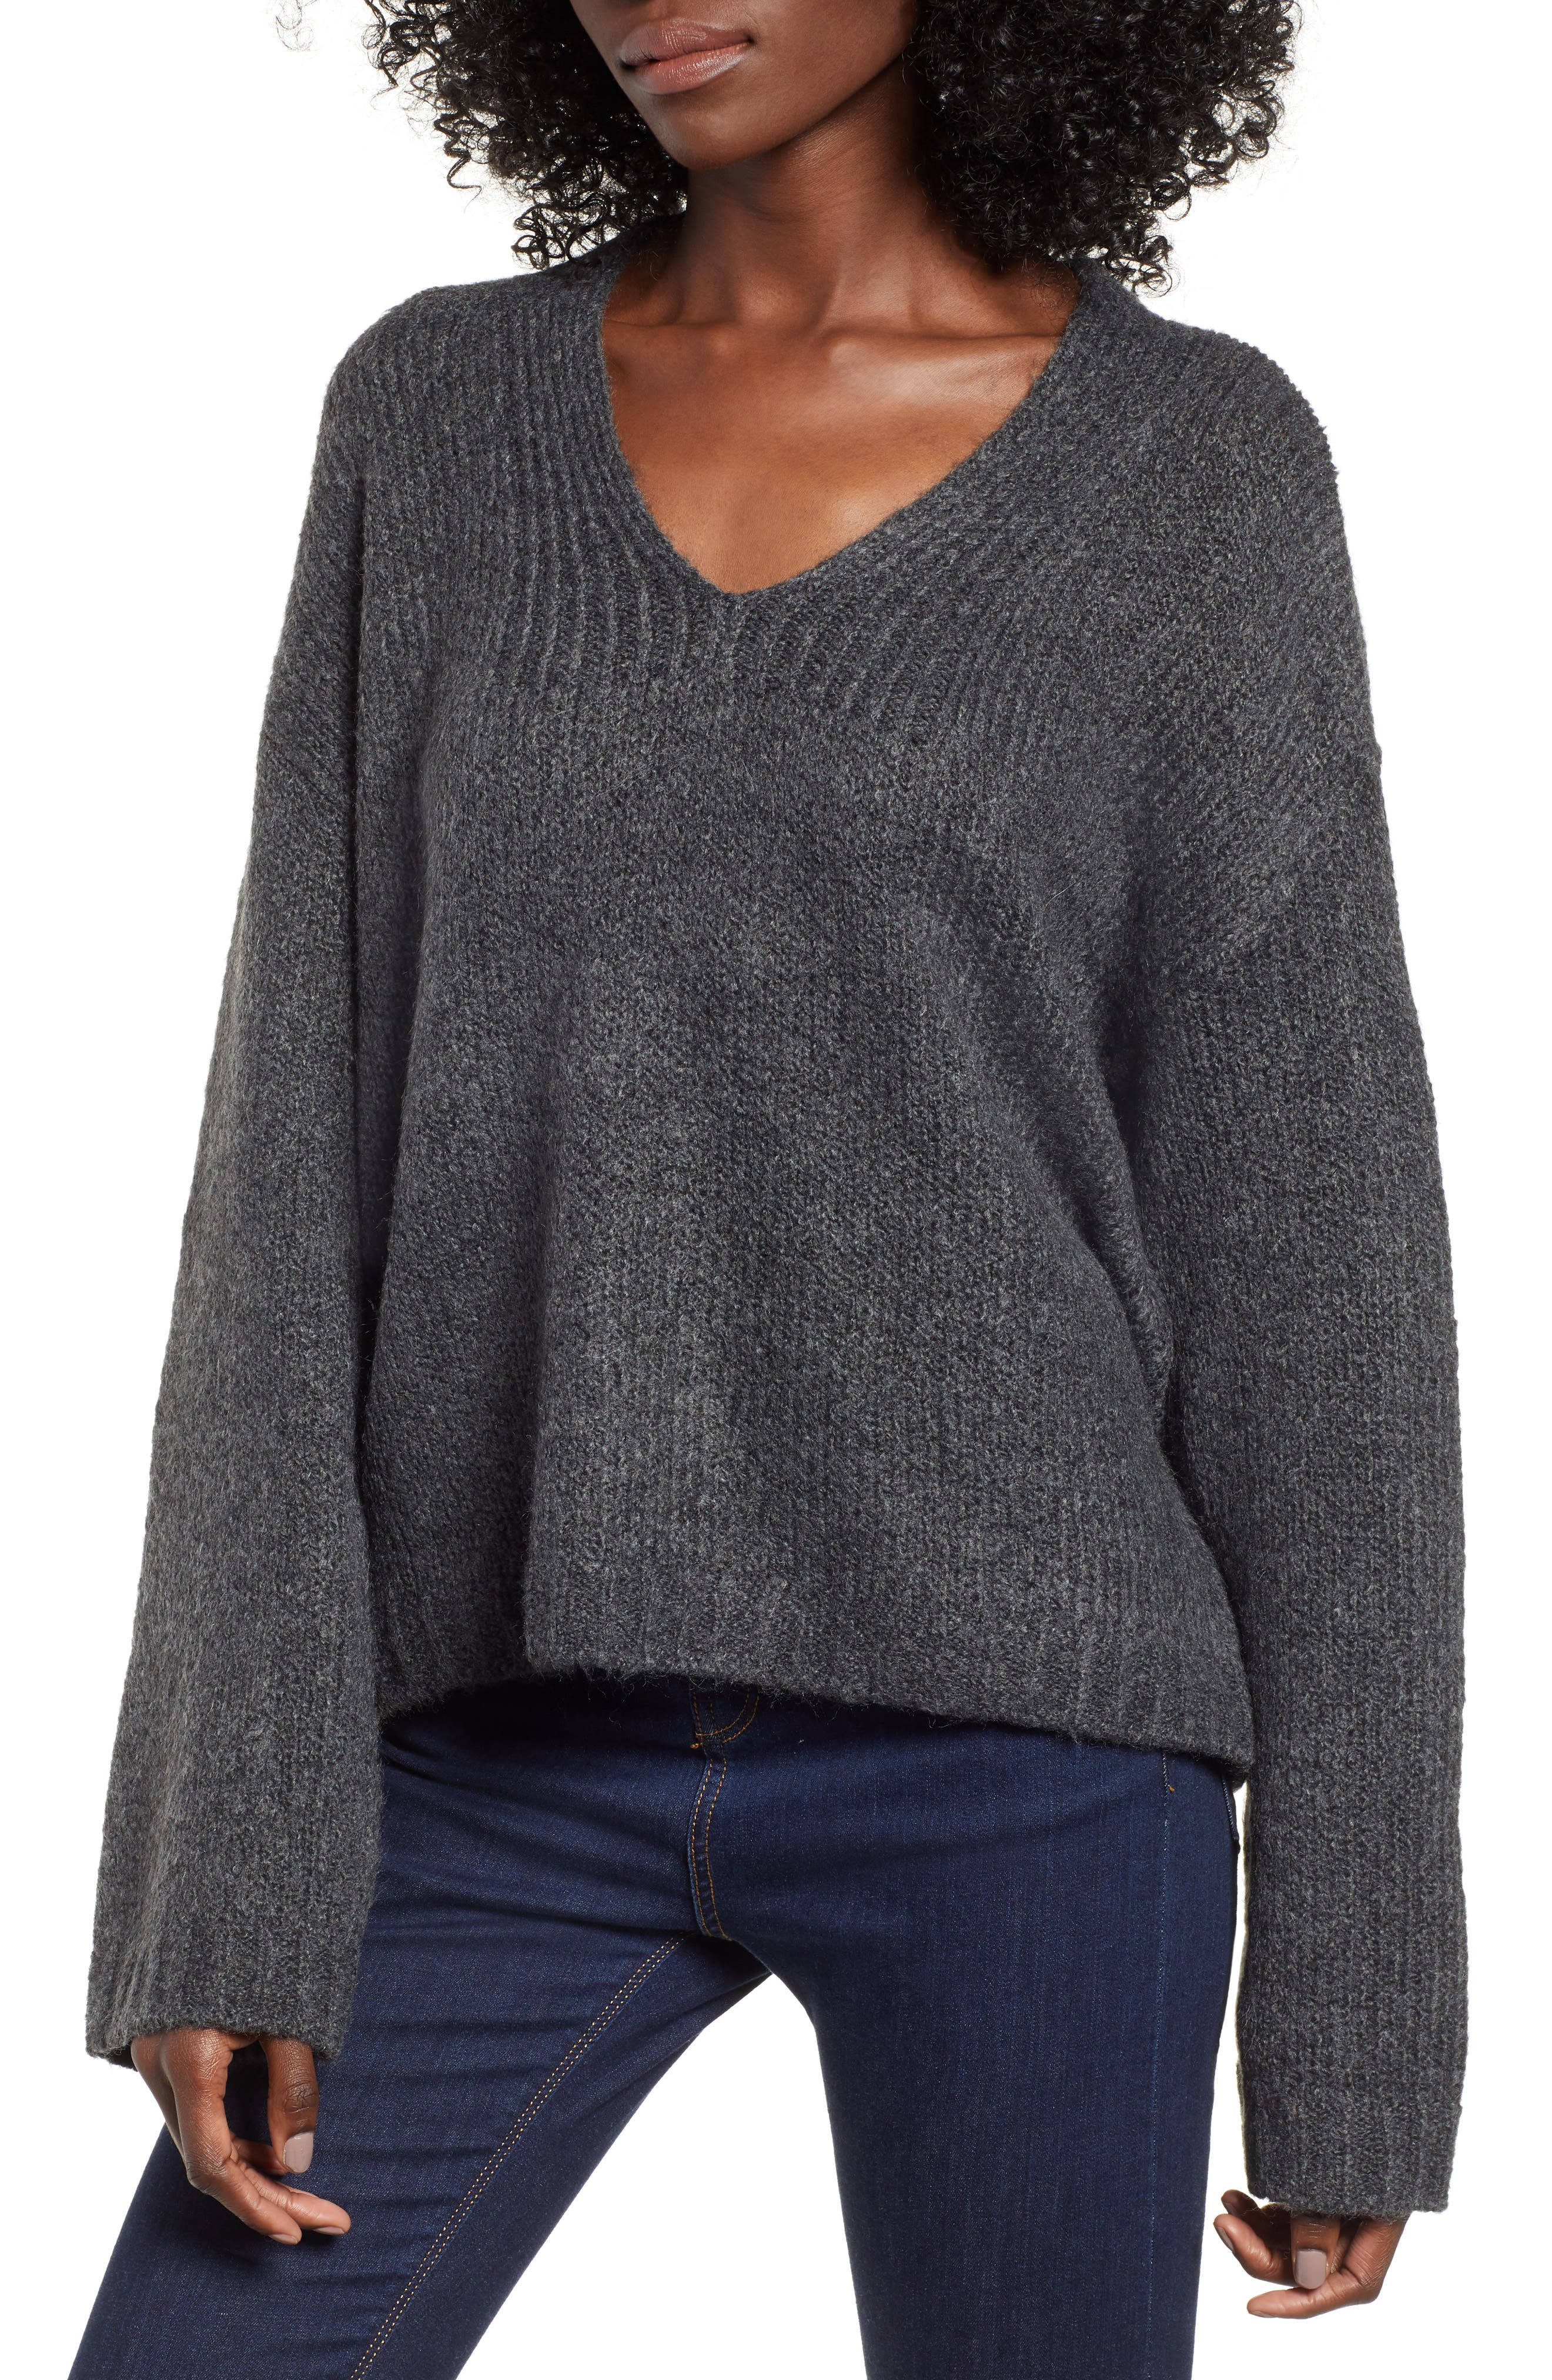 Cozy Sweater by Bp.